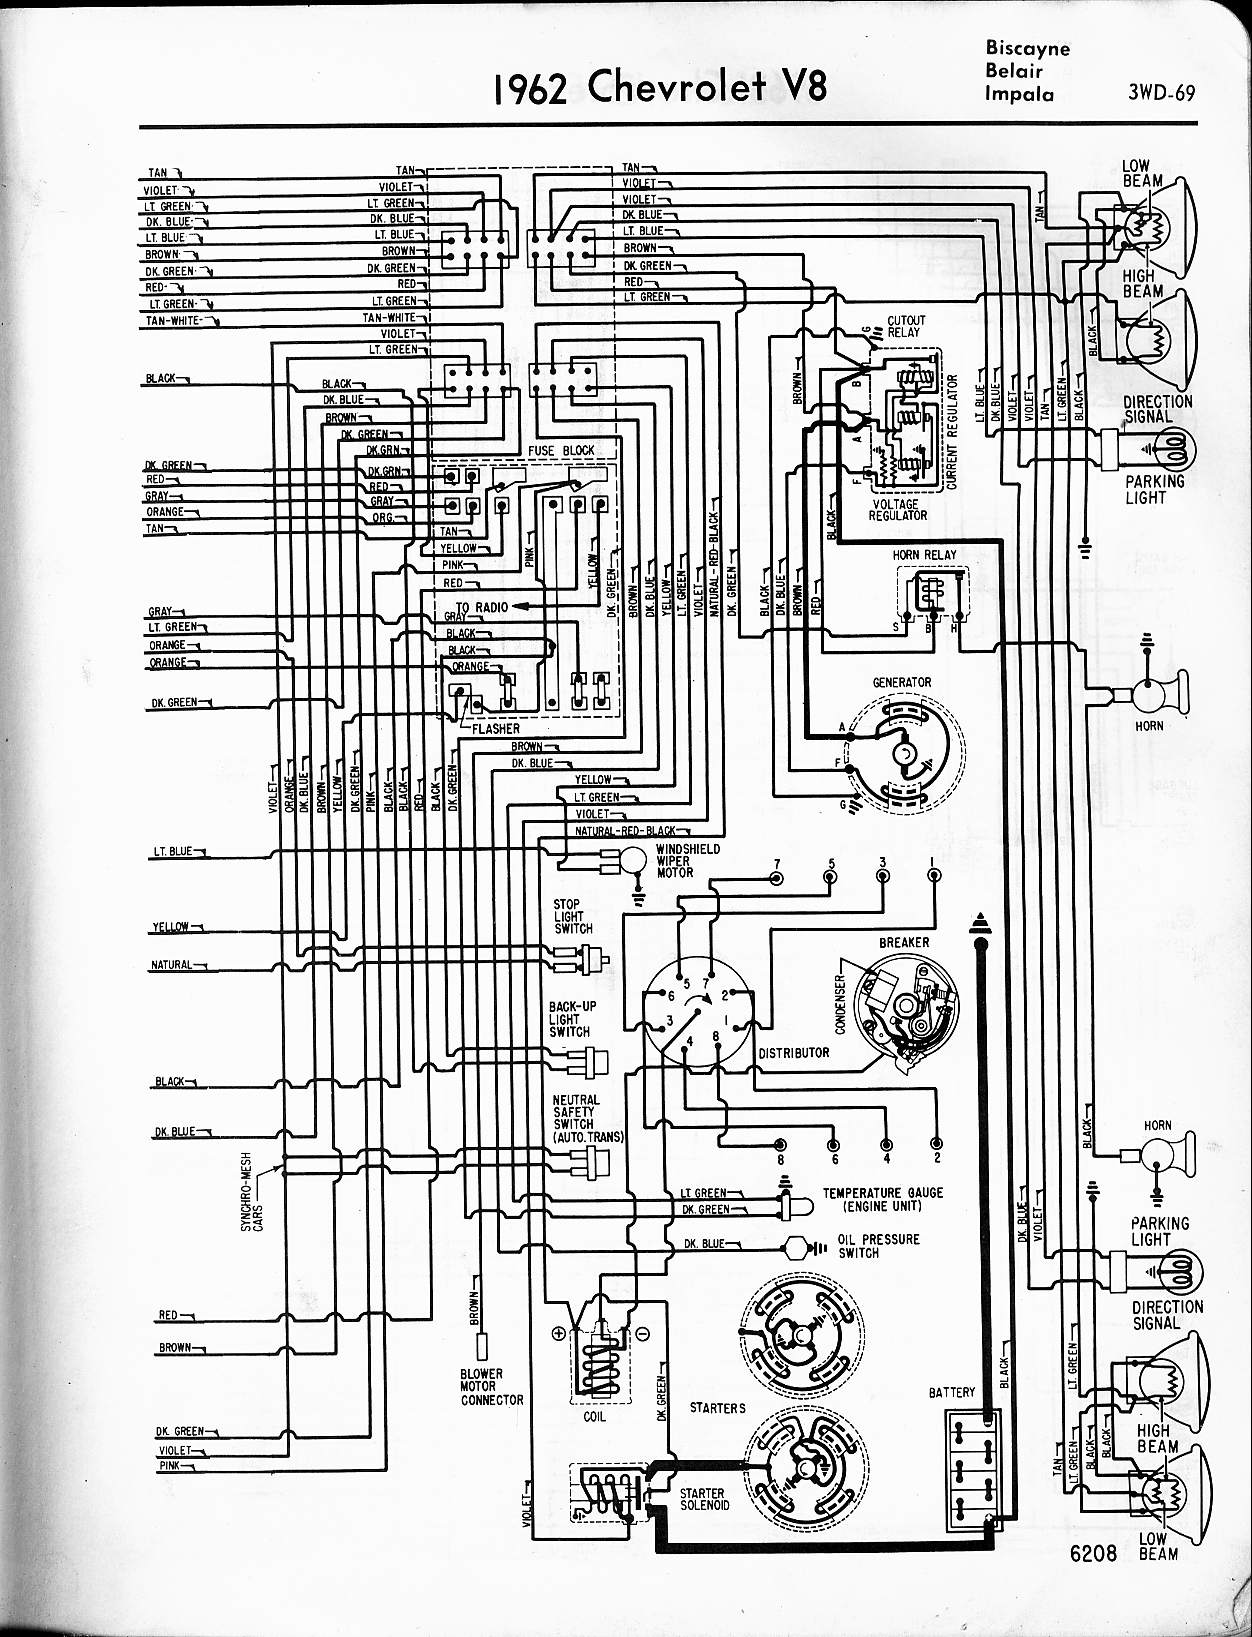 MWireChev62_3WD 069 1962 chevrolet wiring diagram manual chevytalk free 1965 corvair wiring diagram at aneh.co